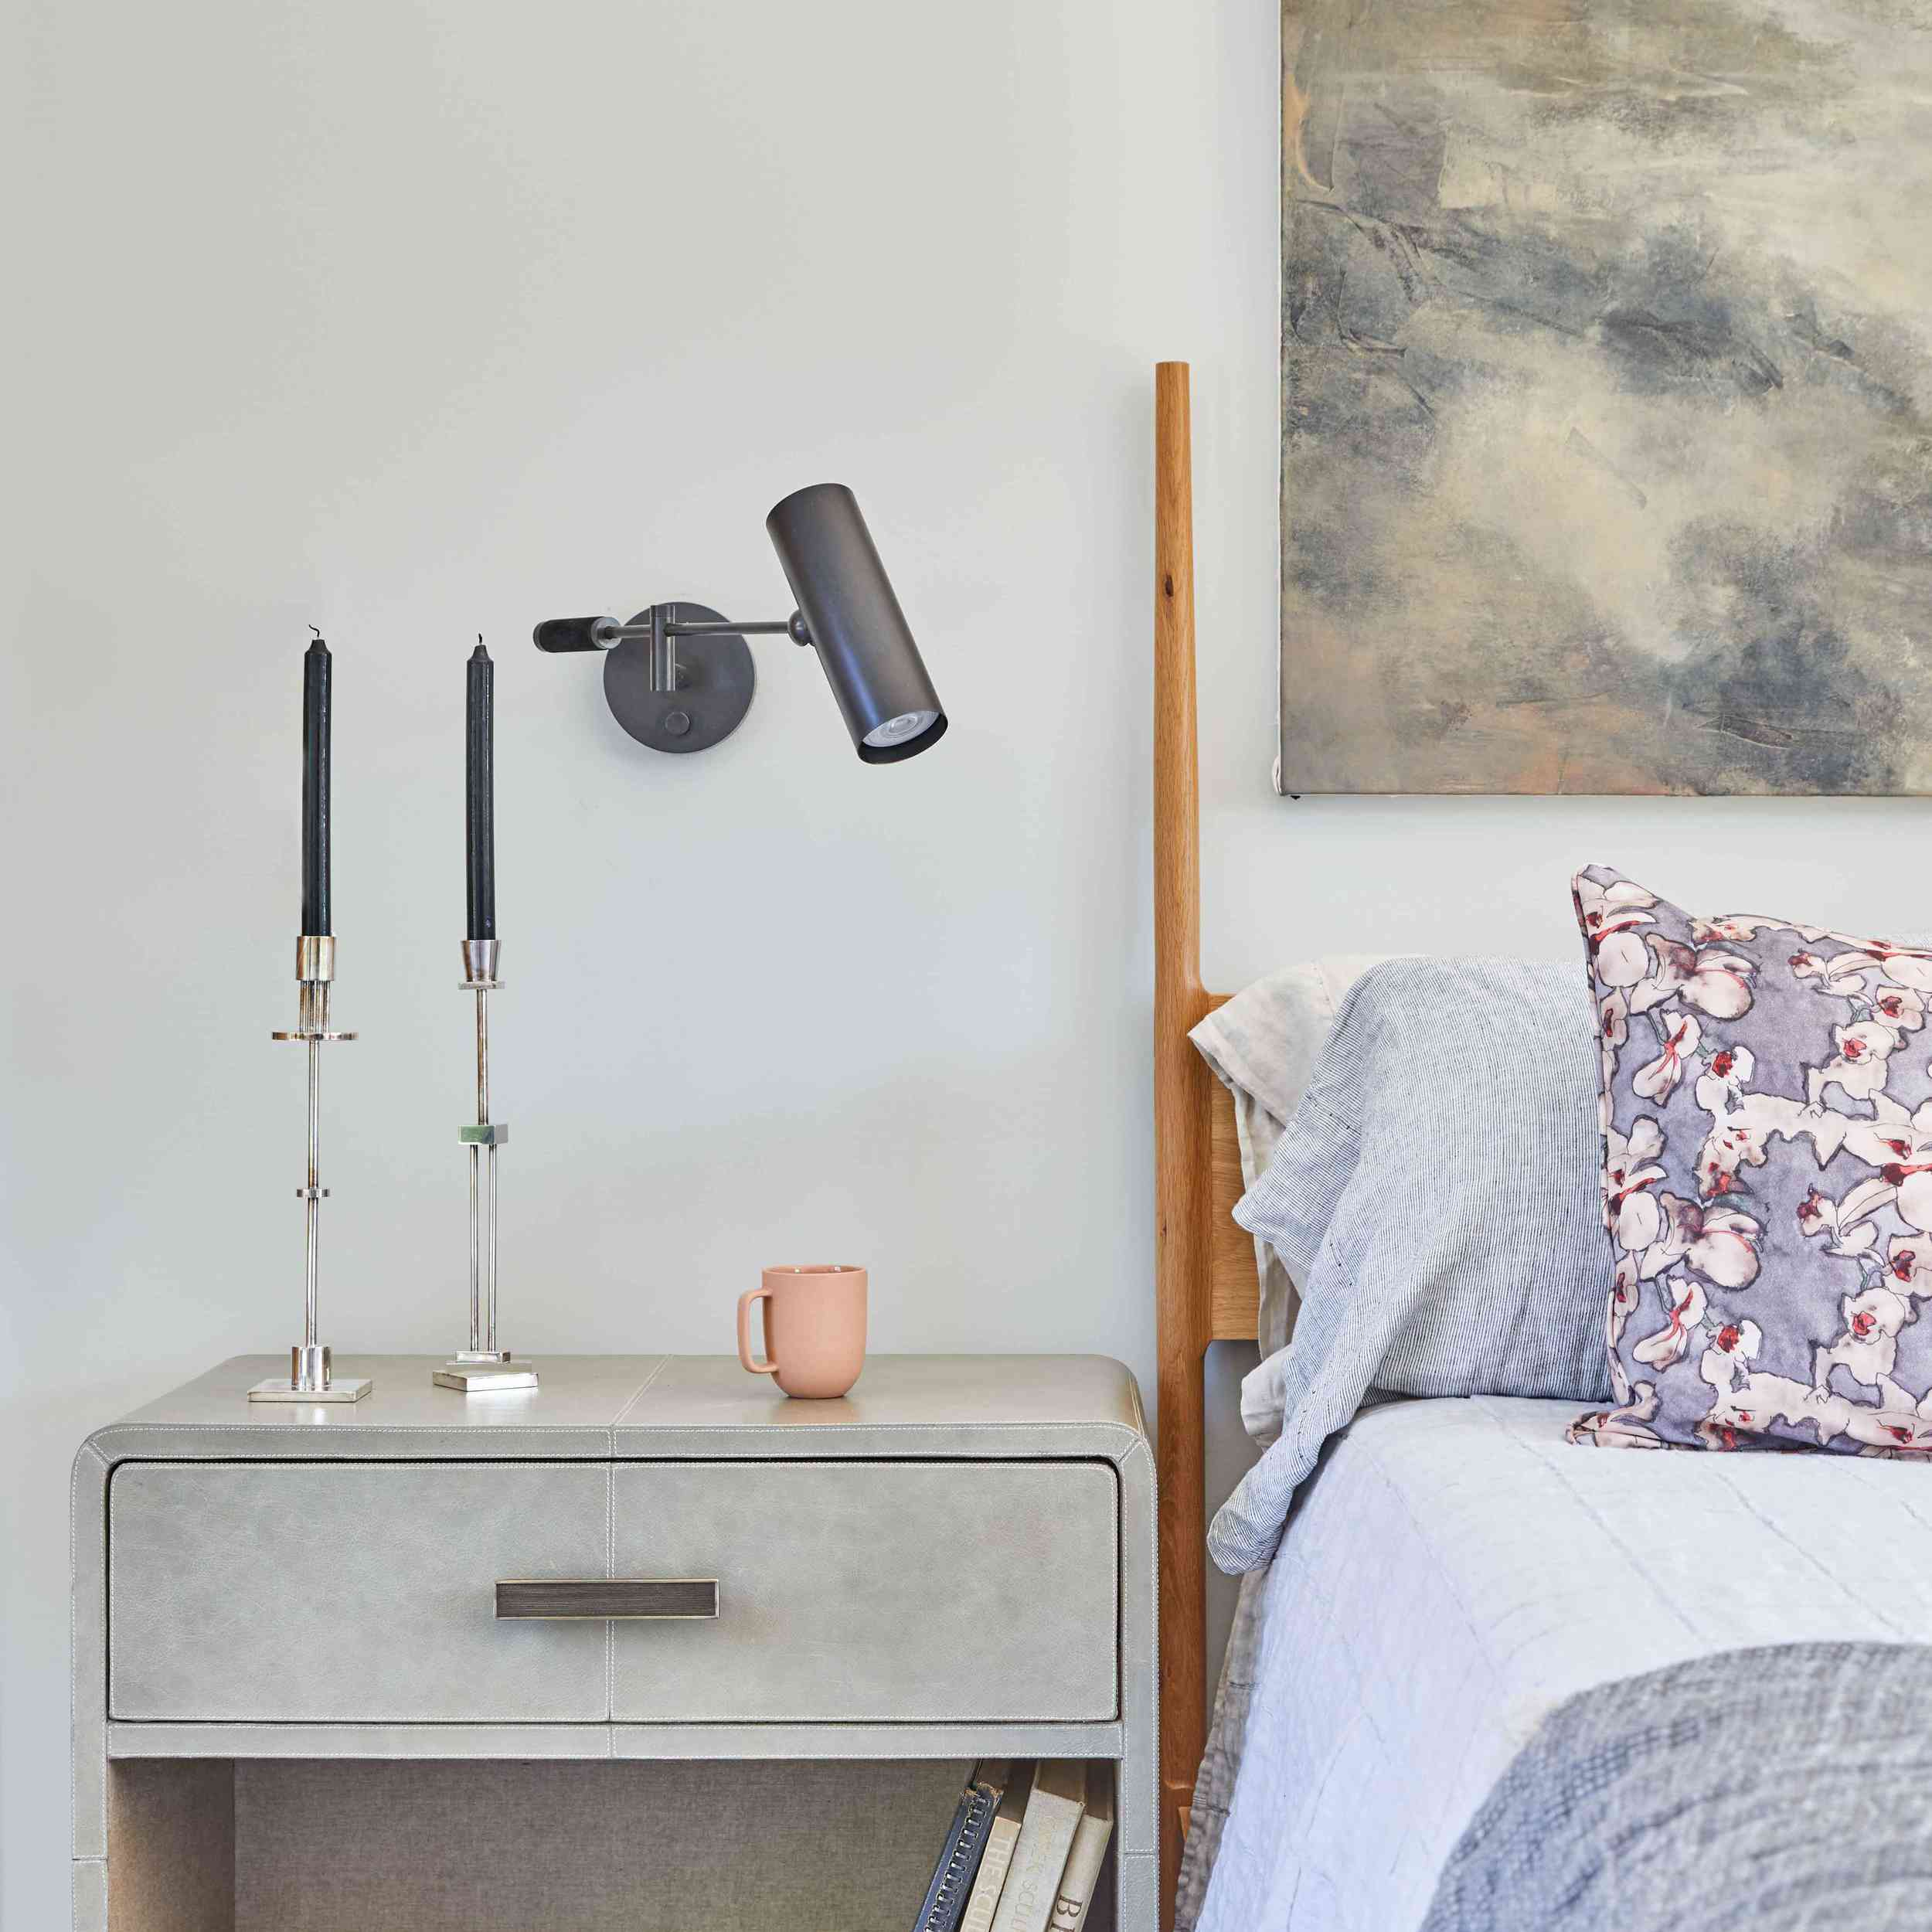 Contemporary bedside table setup with blue-gray wall